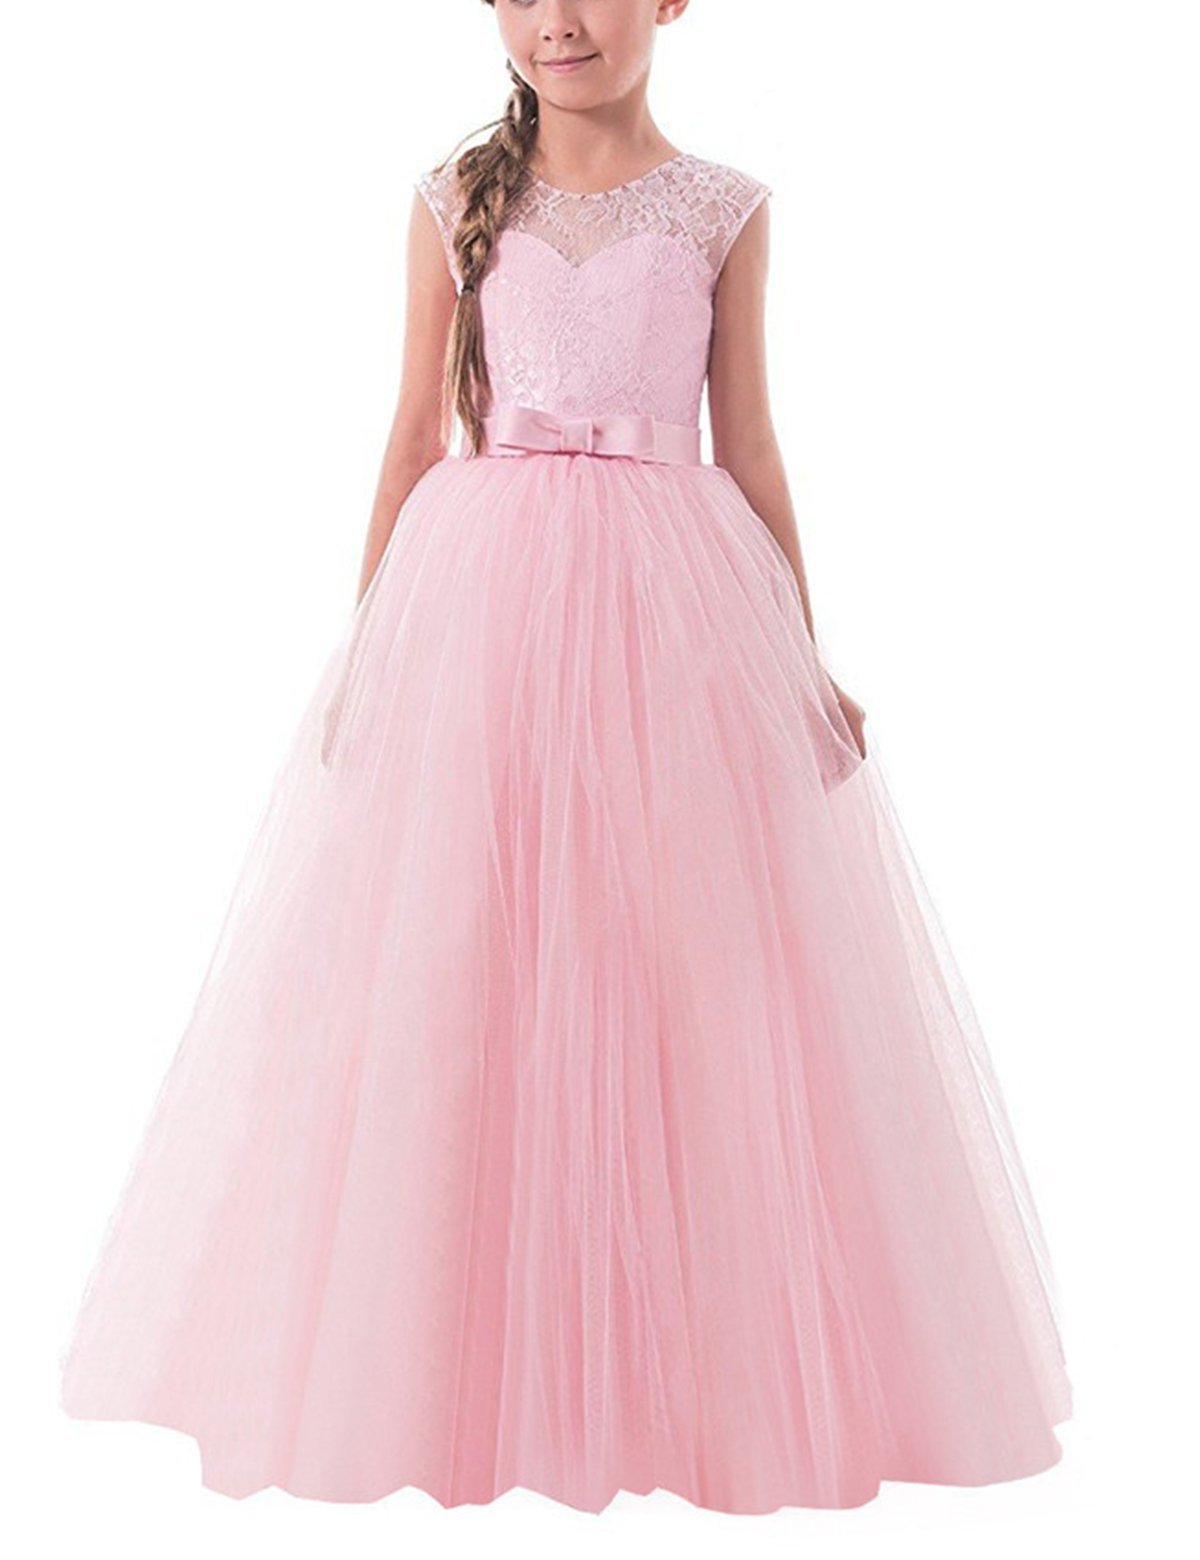 TTYAOVO Girls Pageant Ball Gowns Kids Chiffon Embroidered Wedding Party Dress Size 6-7 Years Pink